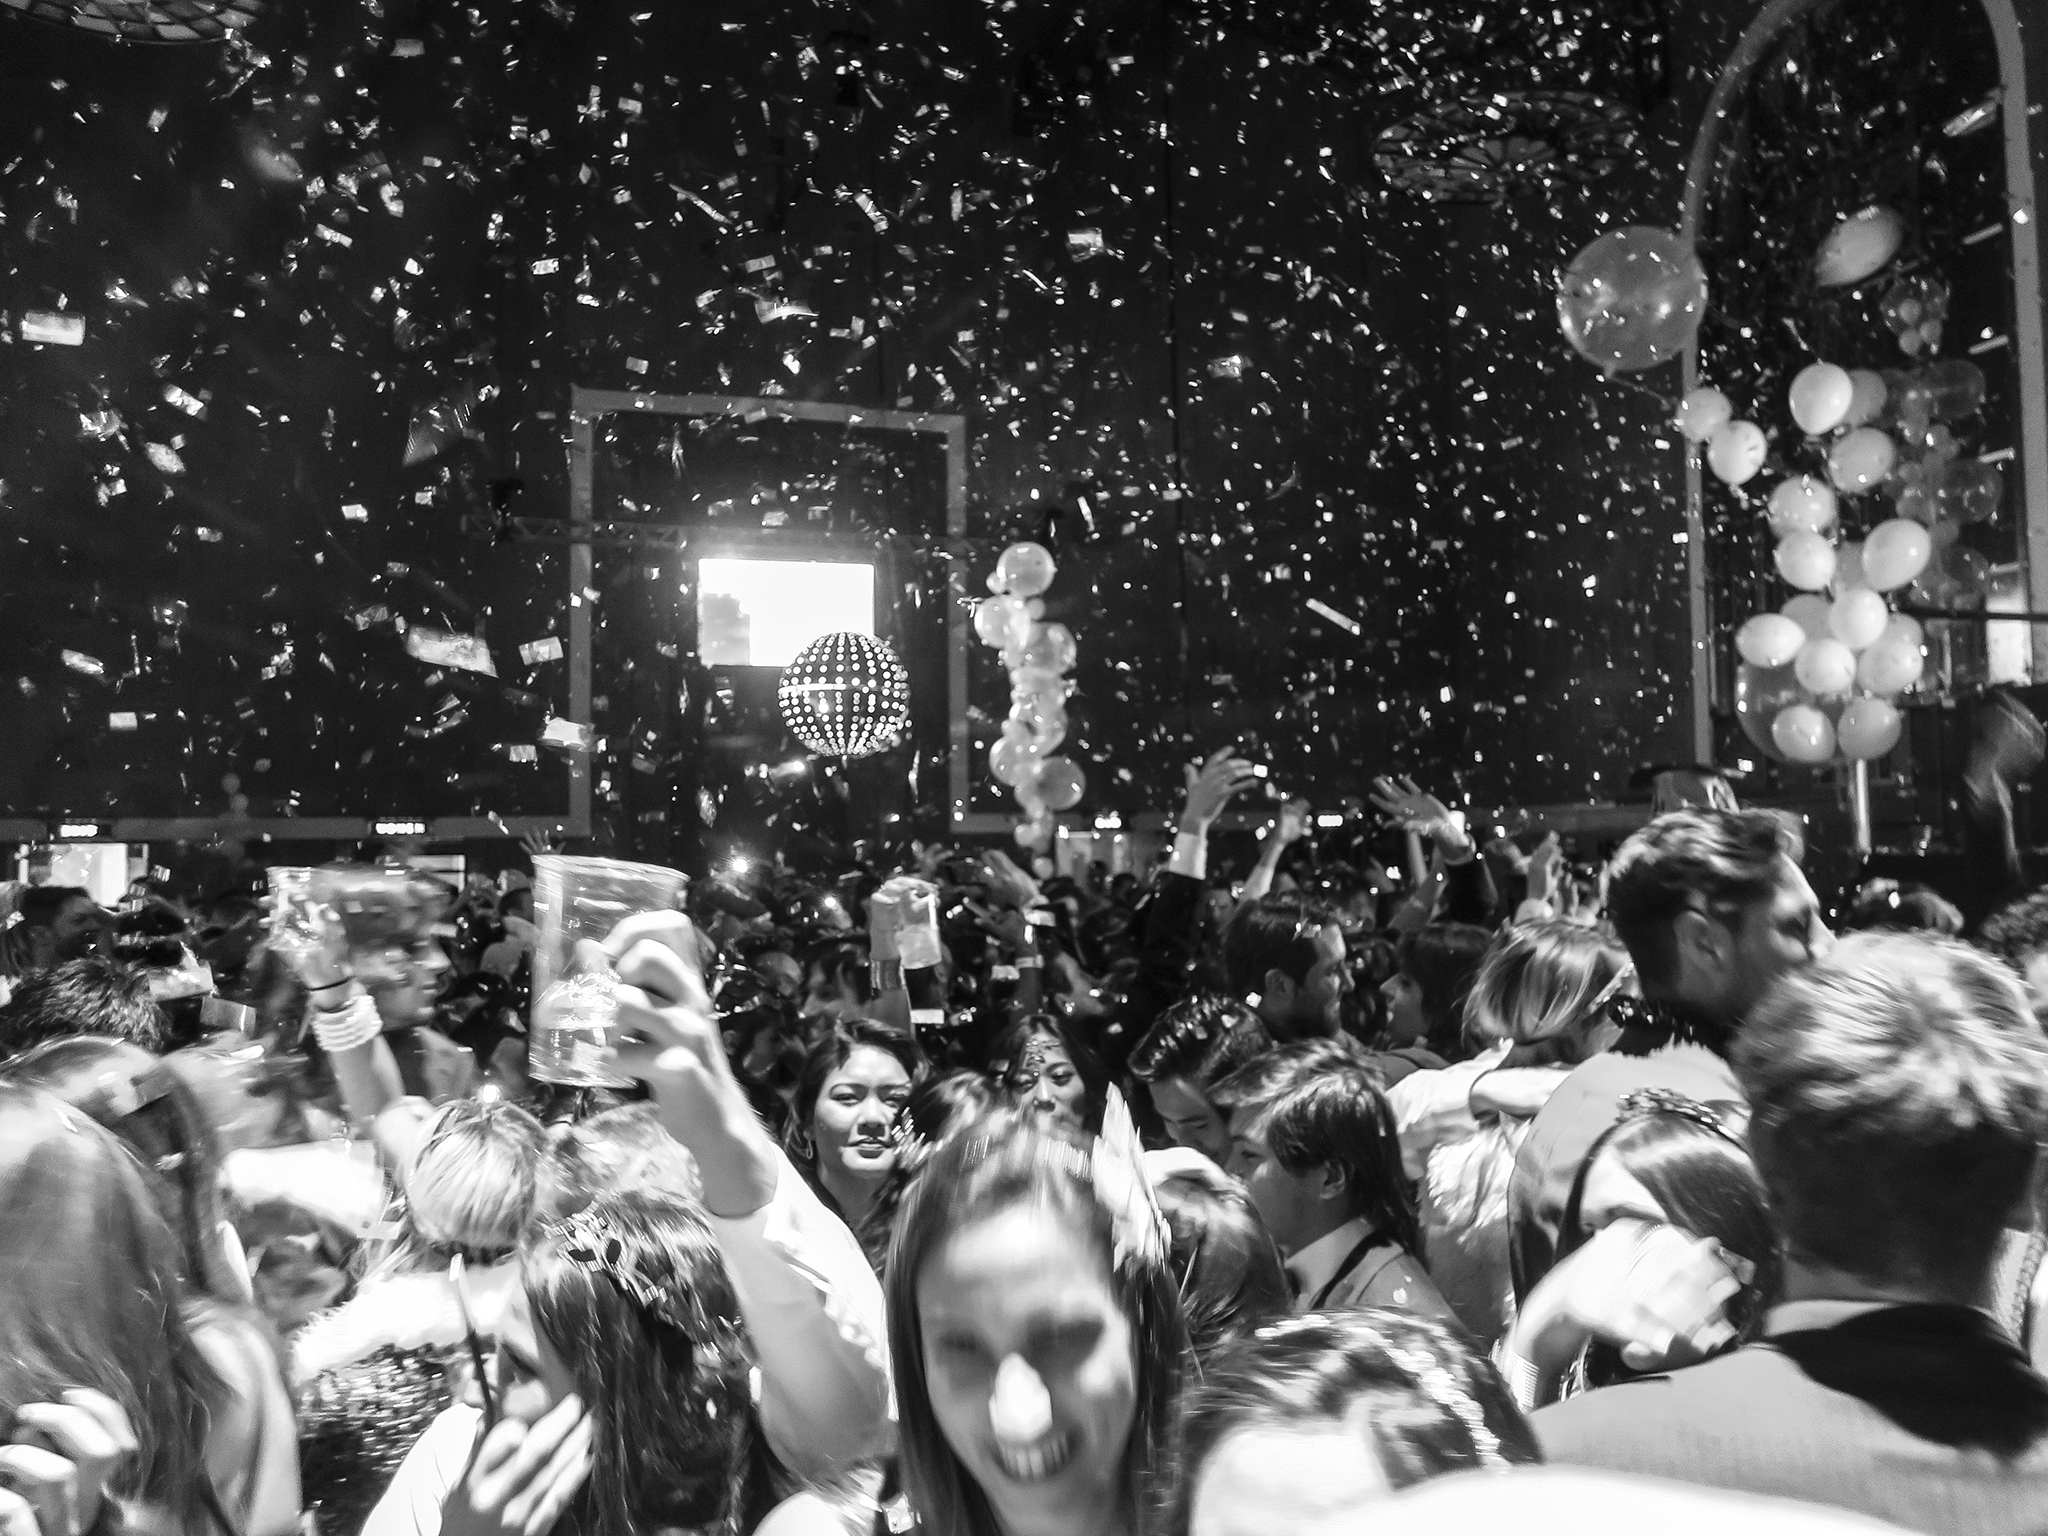 Prohibition NYE at Union Station 2015